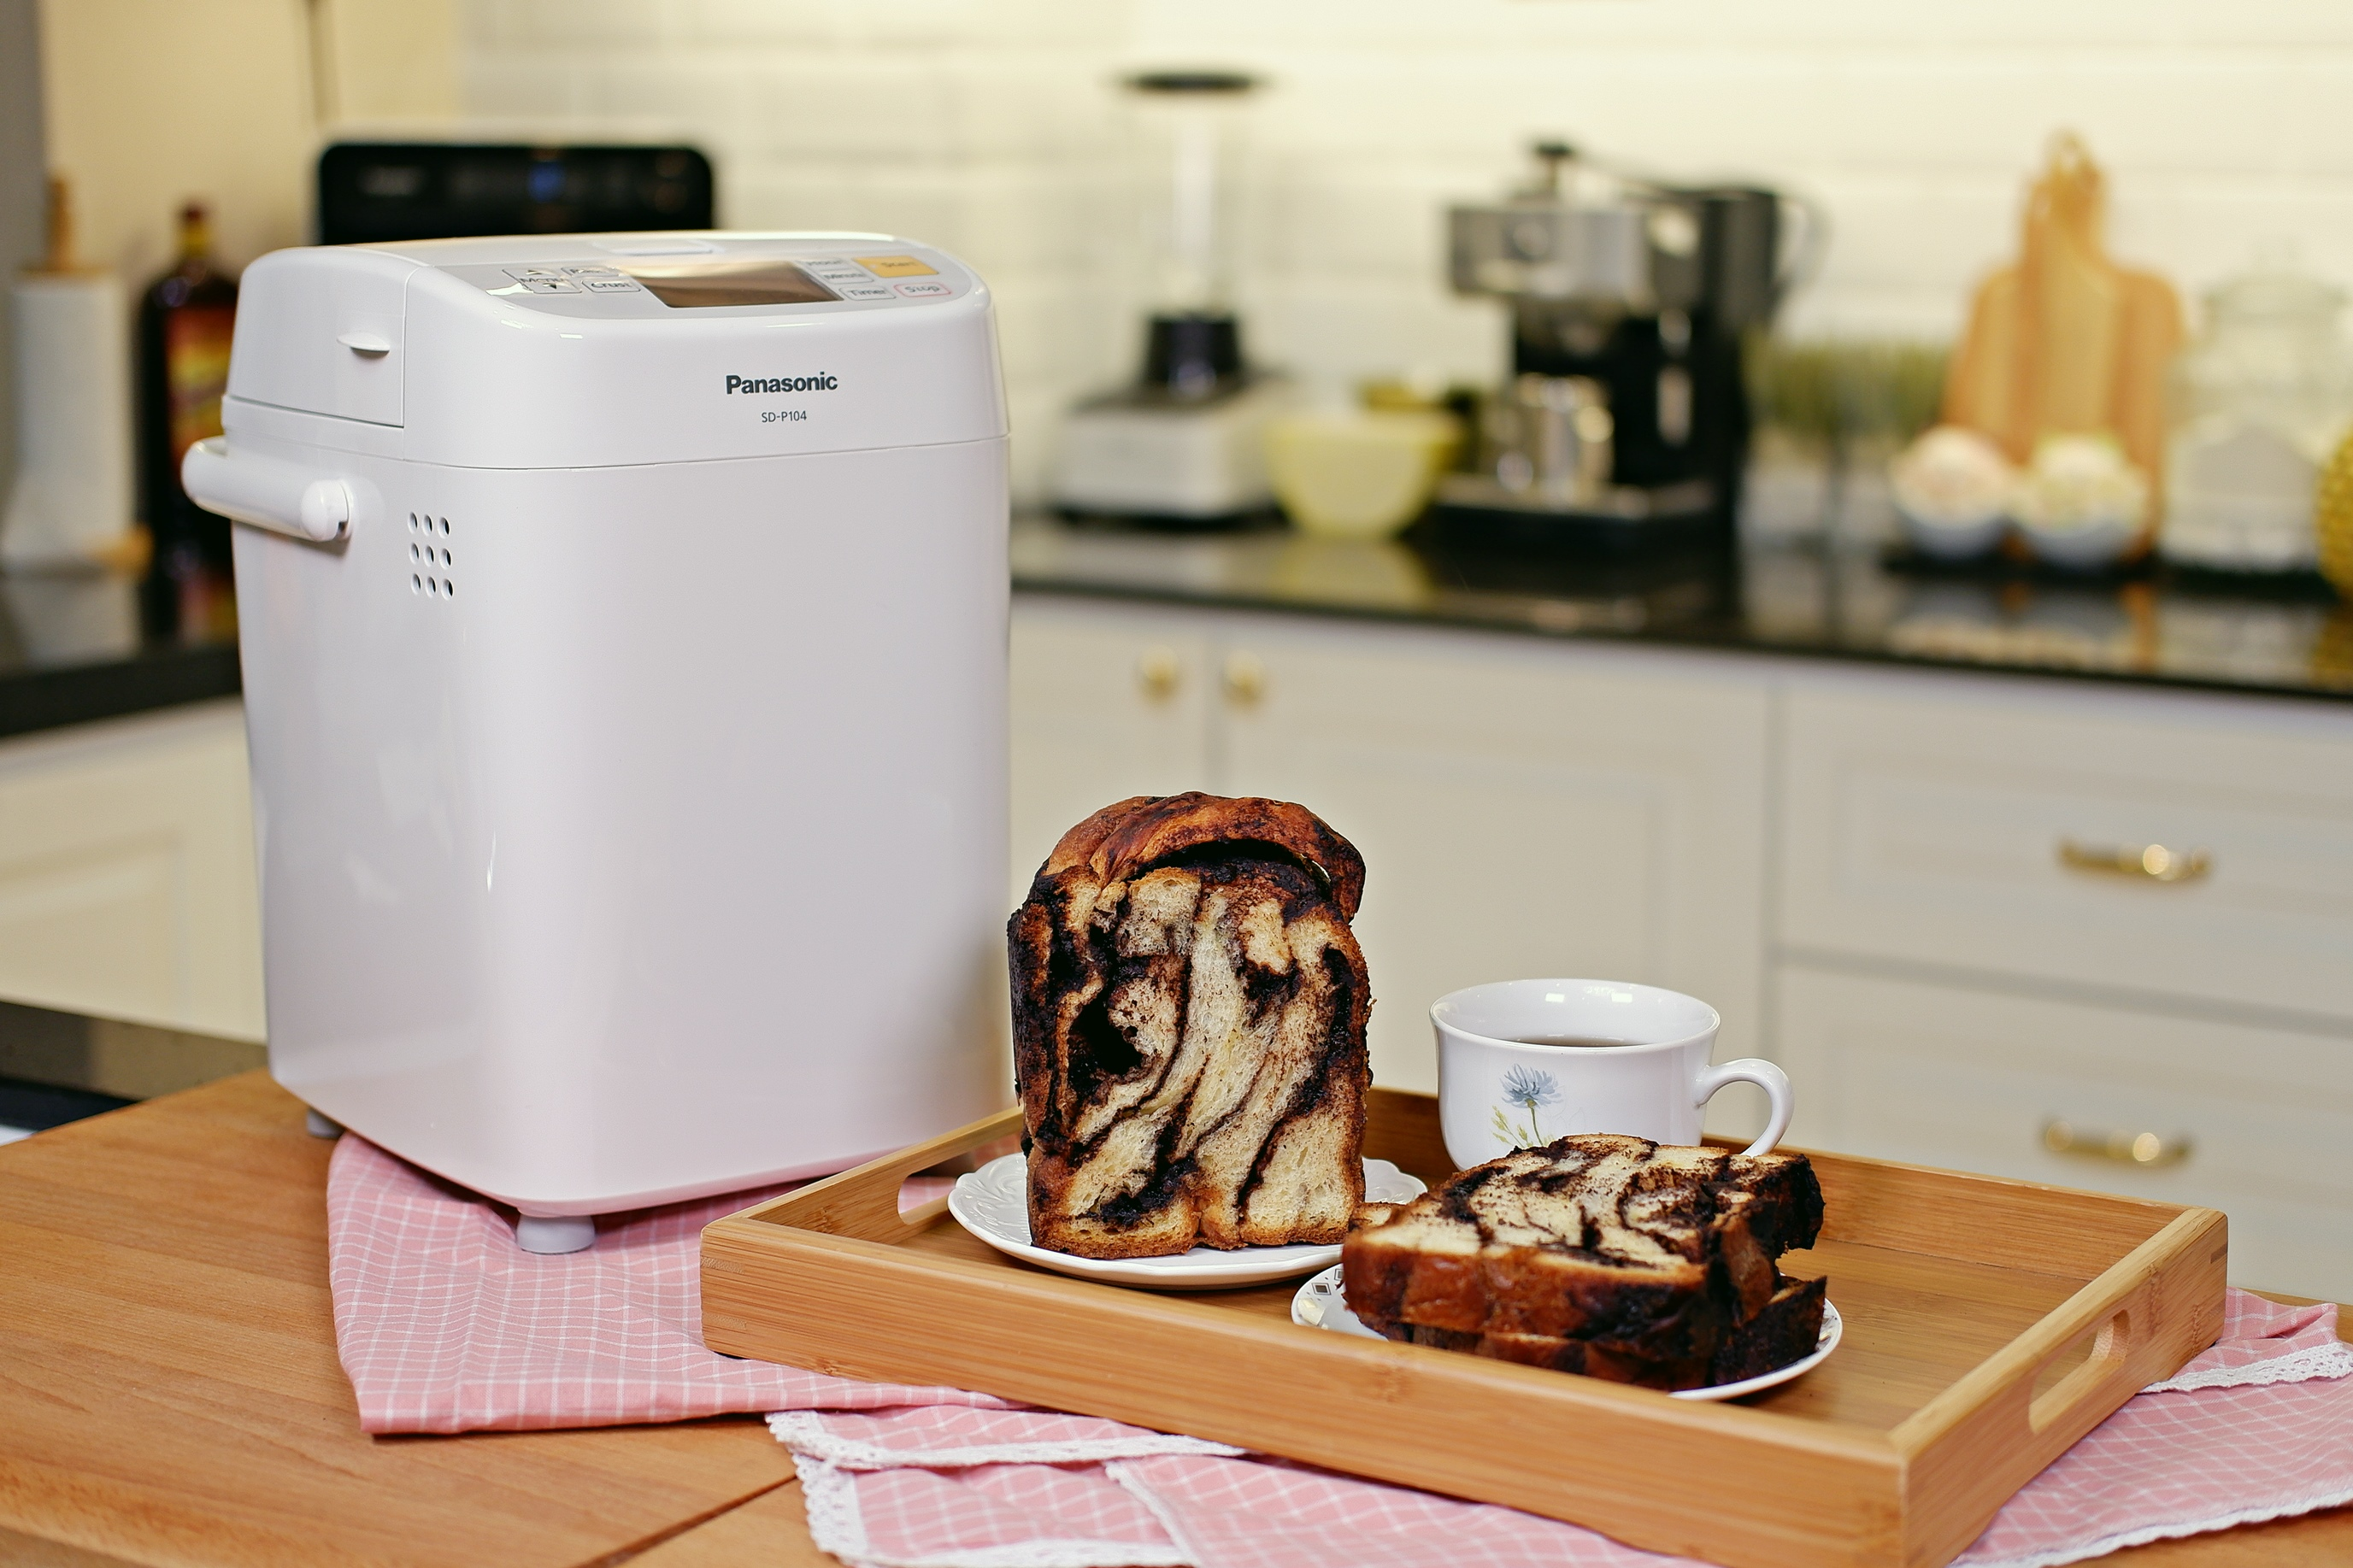 Chocolate Swirl Bread (Babka) with Panasonic Bread Maker SD-P104